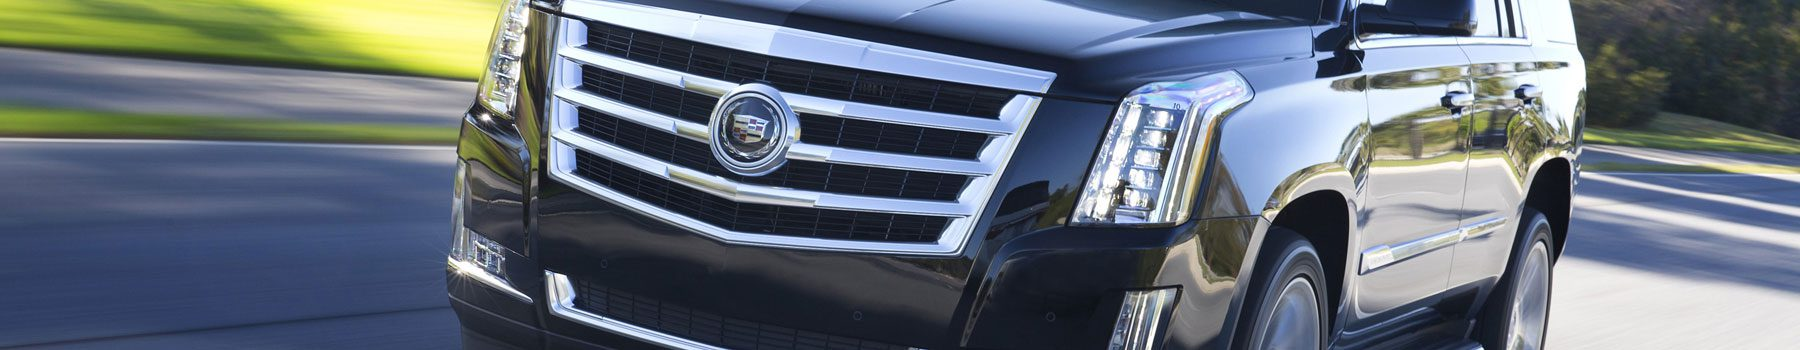 Shop OEM Cadillac Touch Up Paint